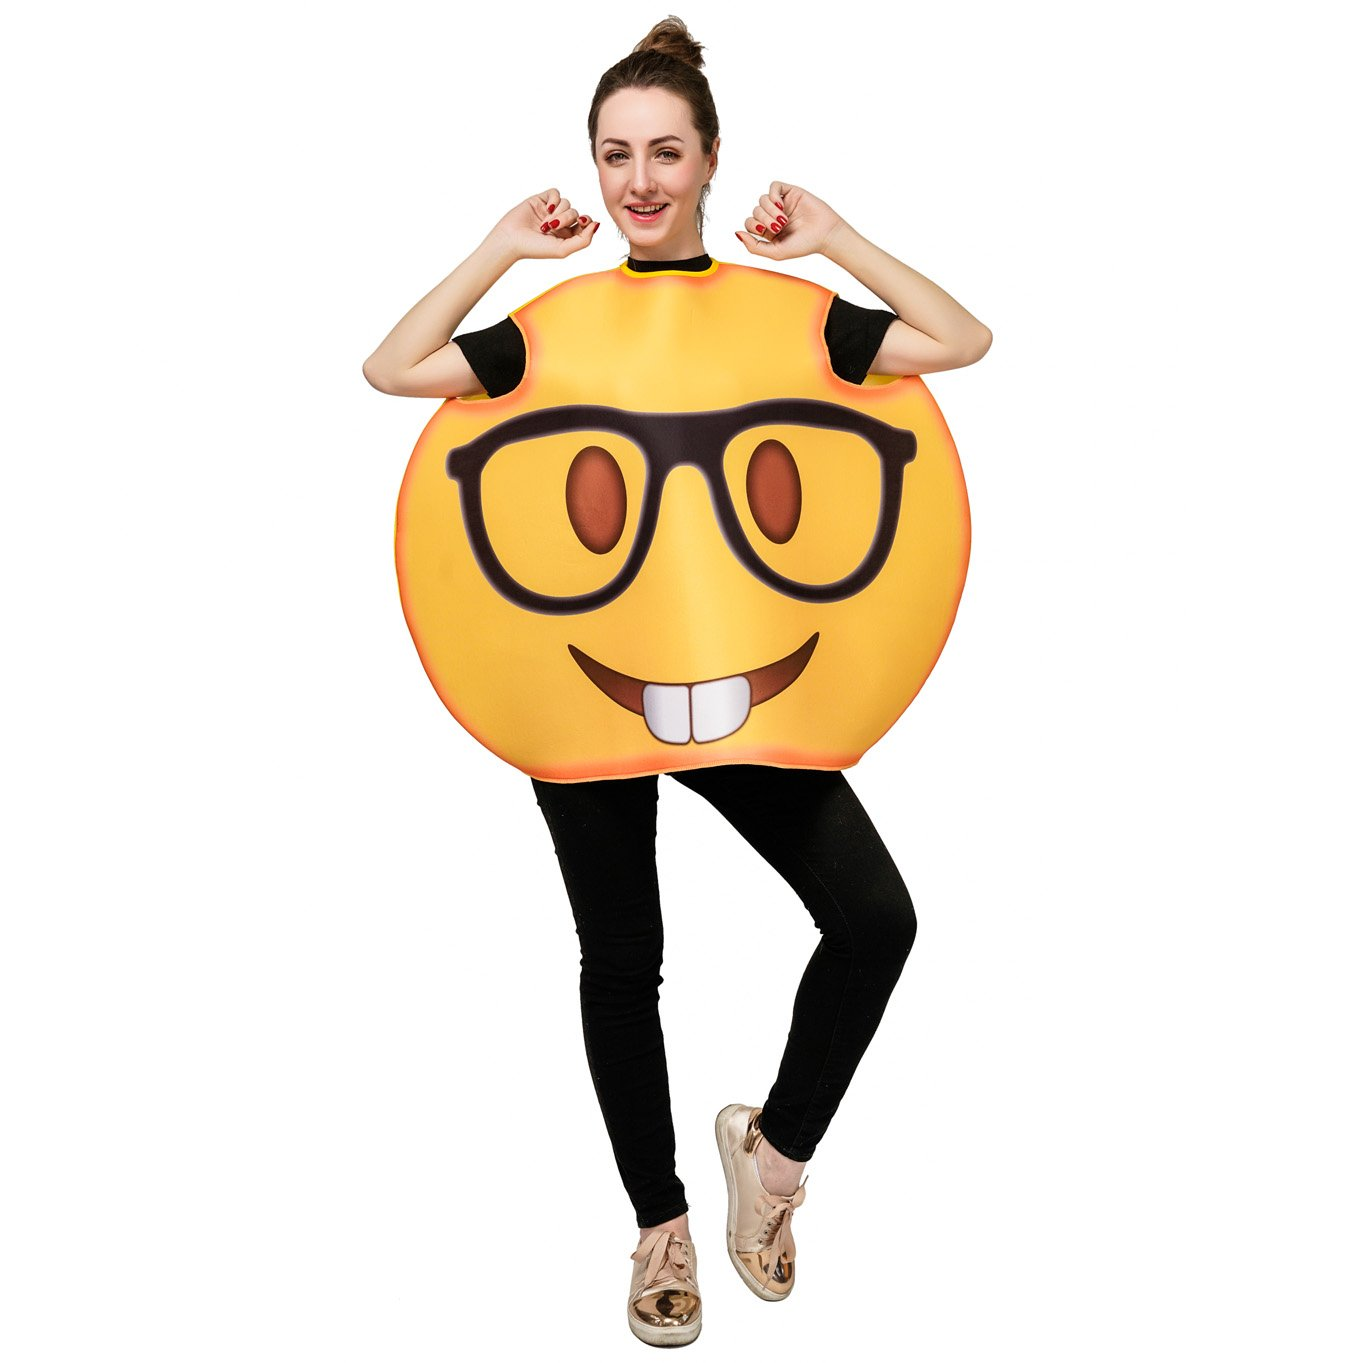 DSplay Emoticon Costumes for Unisex Adult OneSize (Glasses) by DSplay